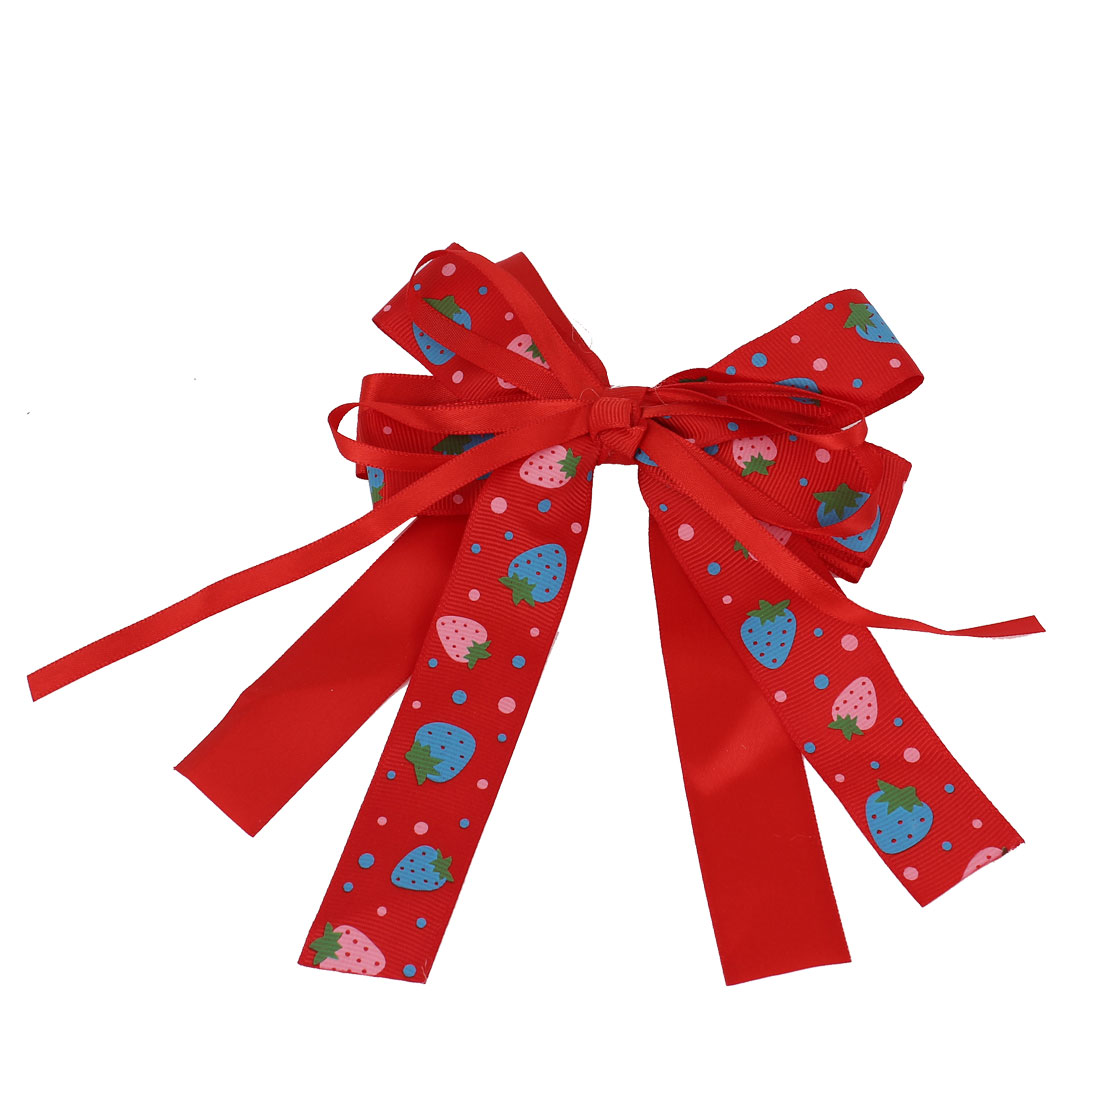 Red Fabric Double Layers Bowknot Strawberries Printed Decor Hair Clip for Girl Lady